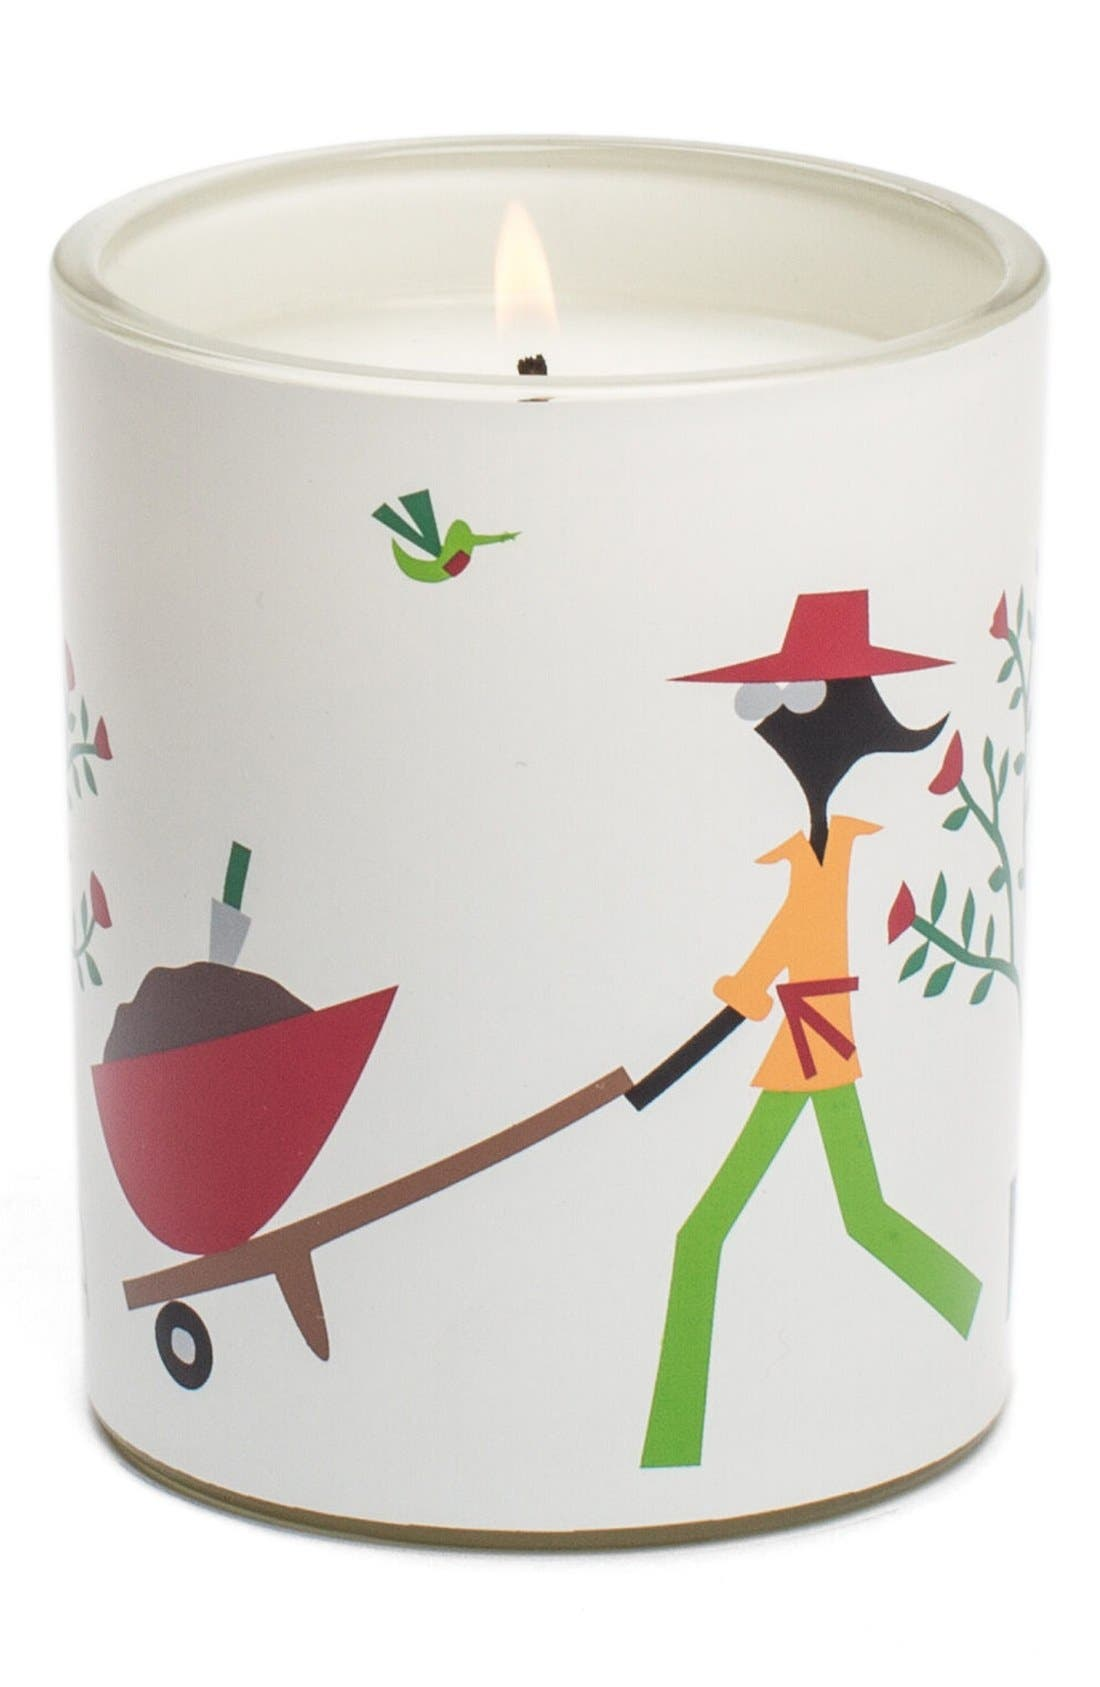 'Bloom' Scented Candle,                             Main thumbnail 1, color,                             000